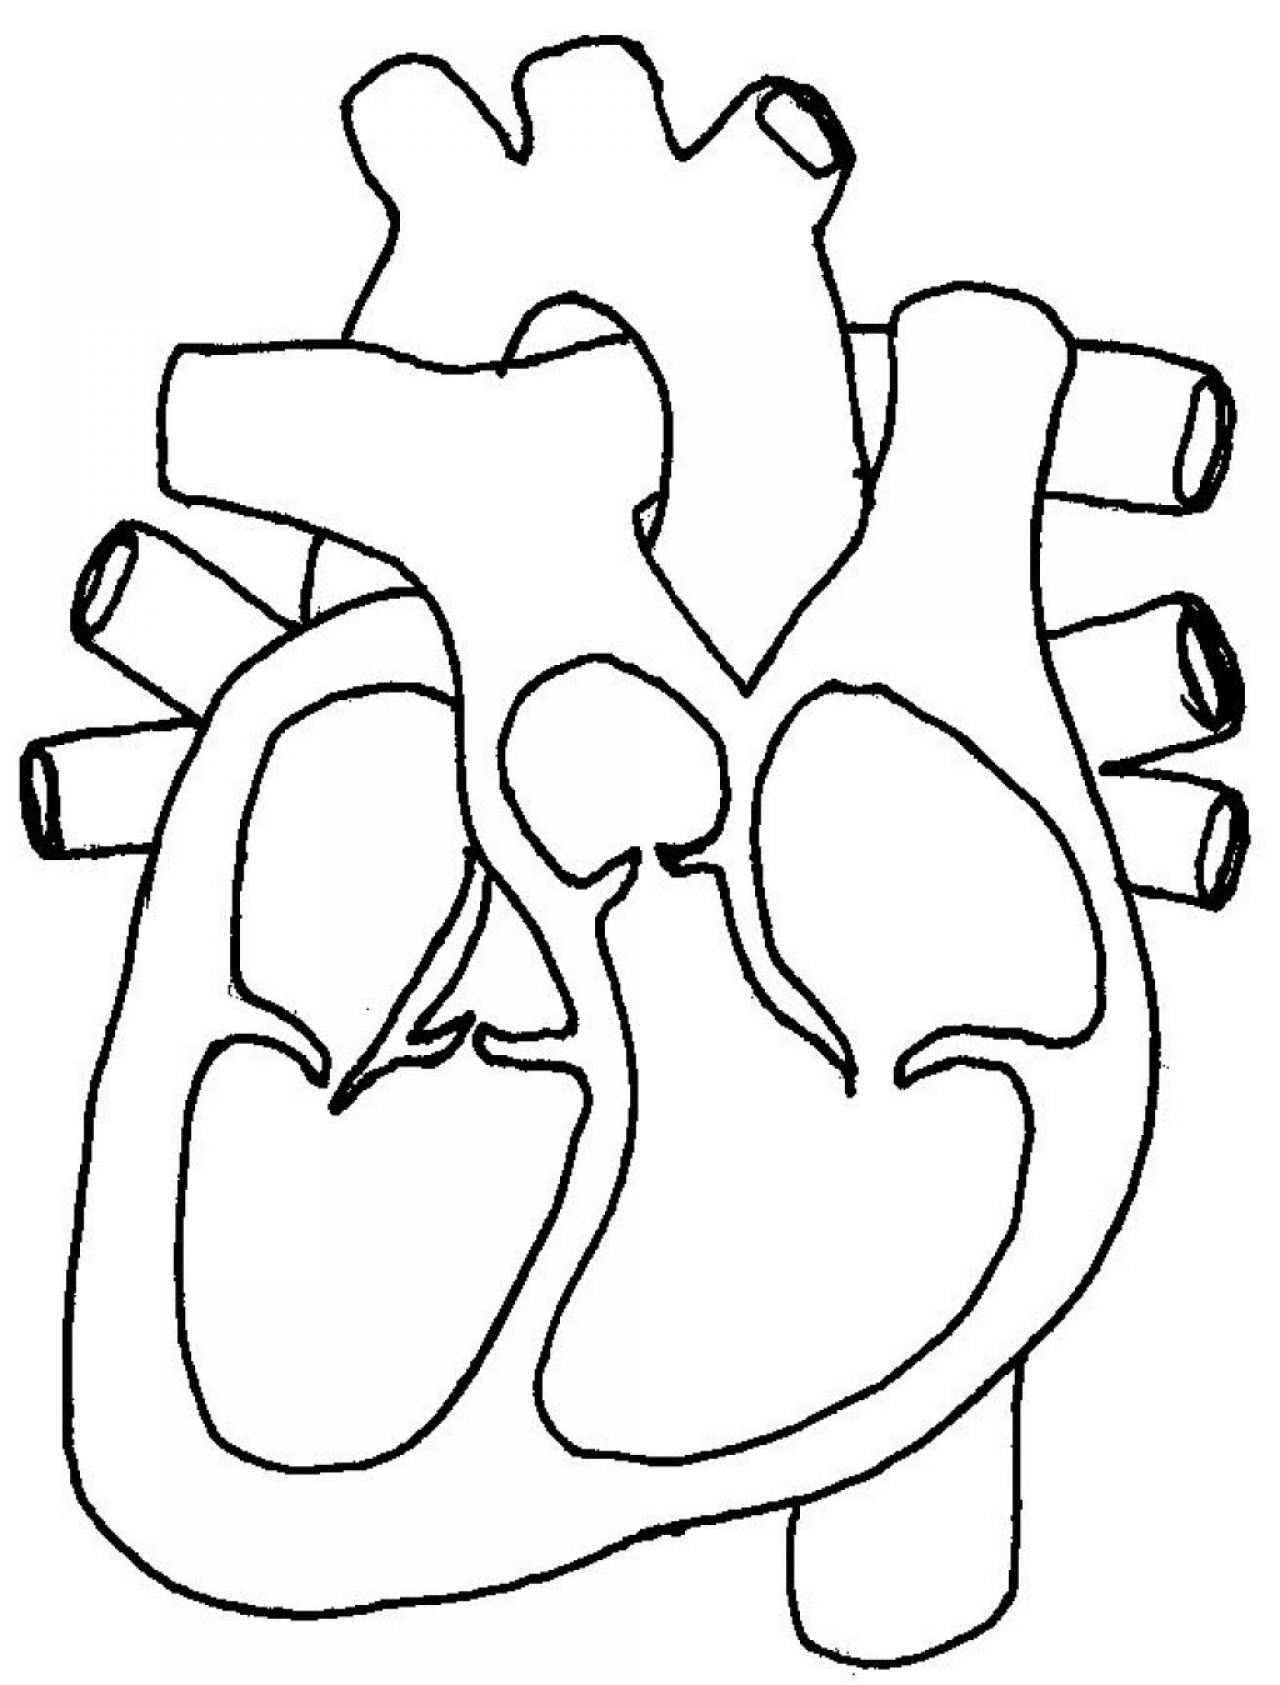 Blank Heart Diagram Worksheet